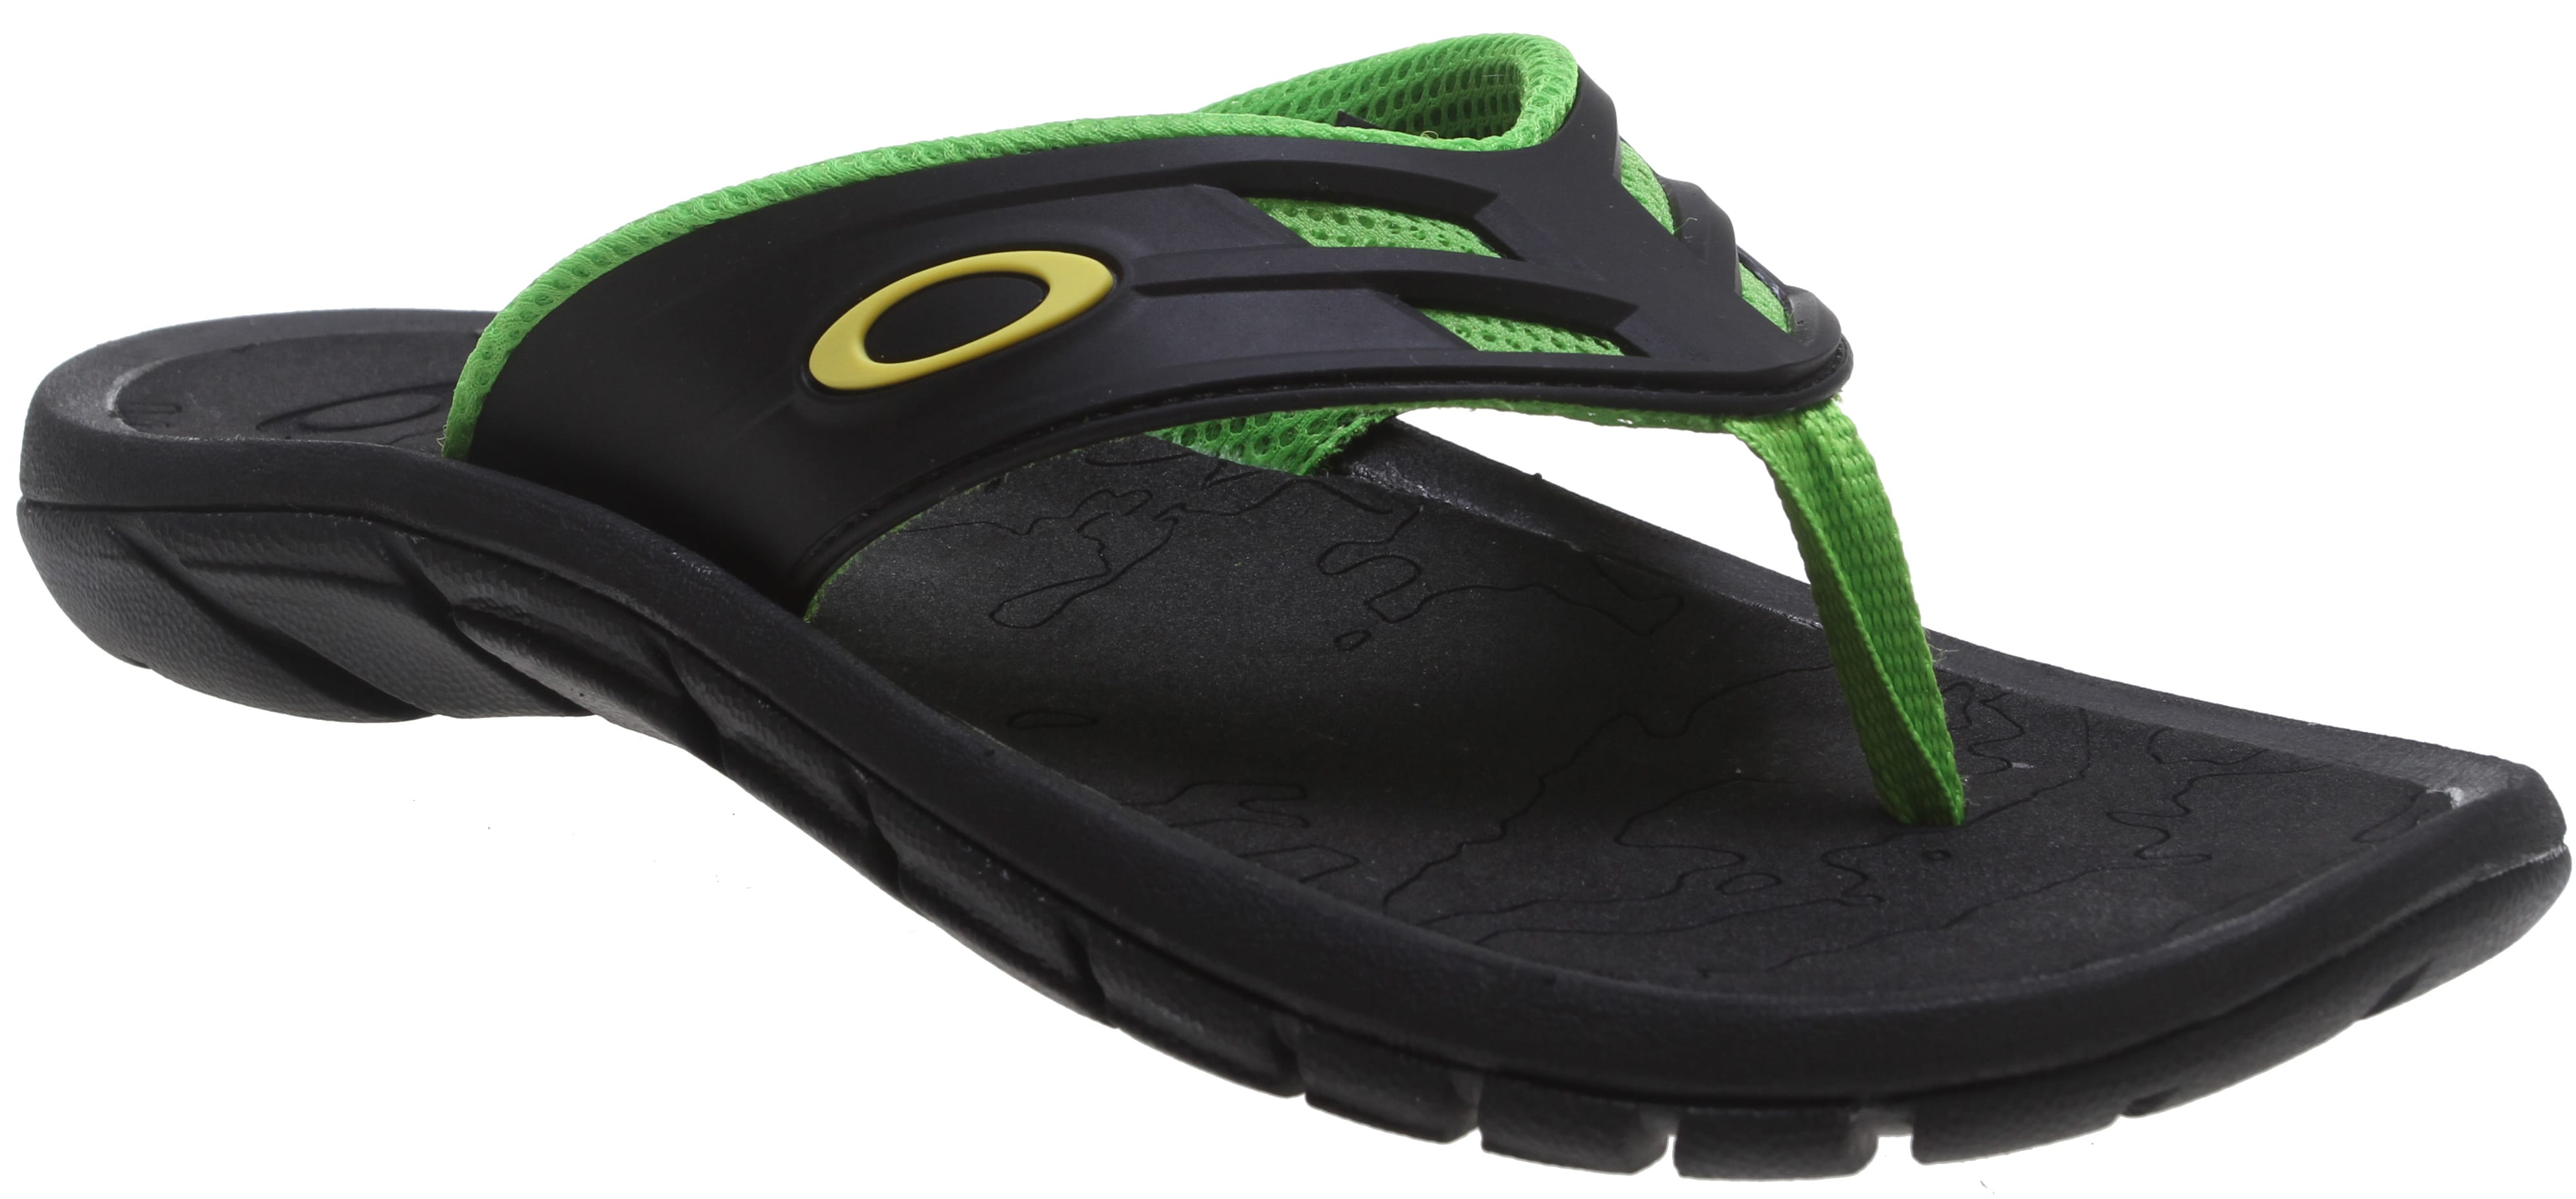 9693ebb980d1 Oakley Supercoil 15 Sandals - thumbnail 2